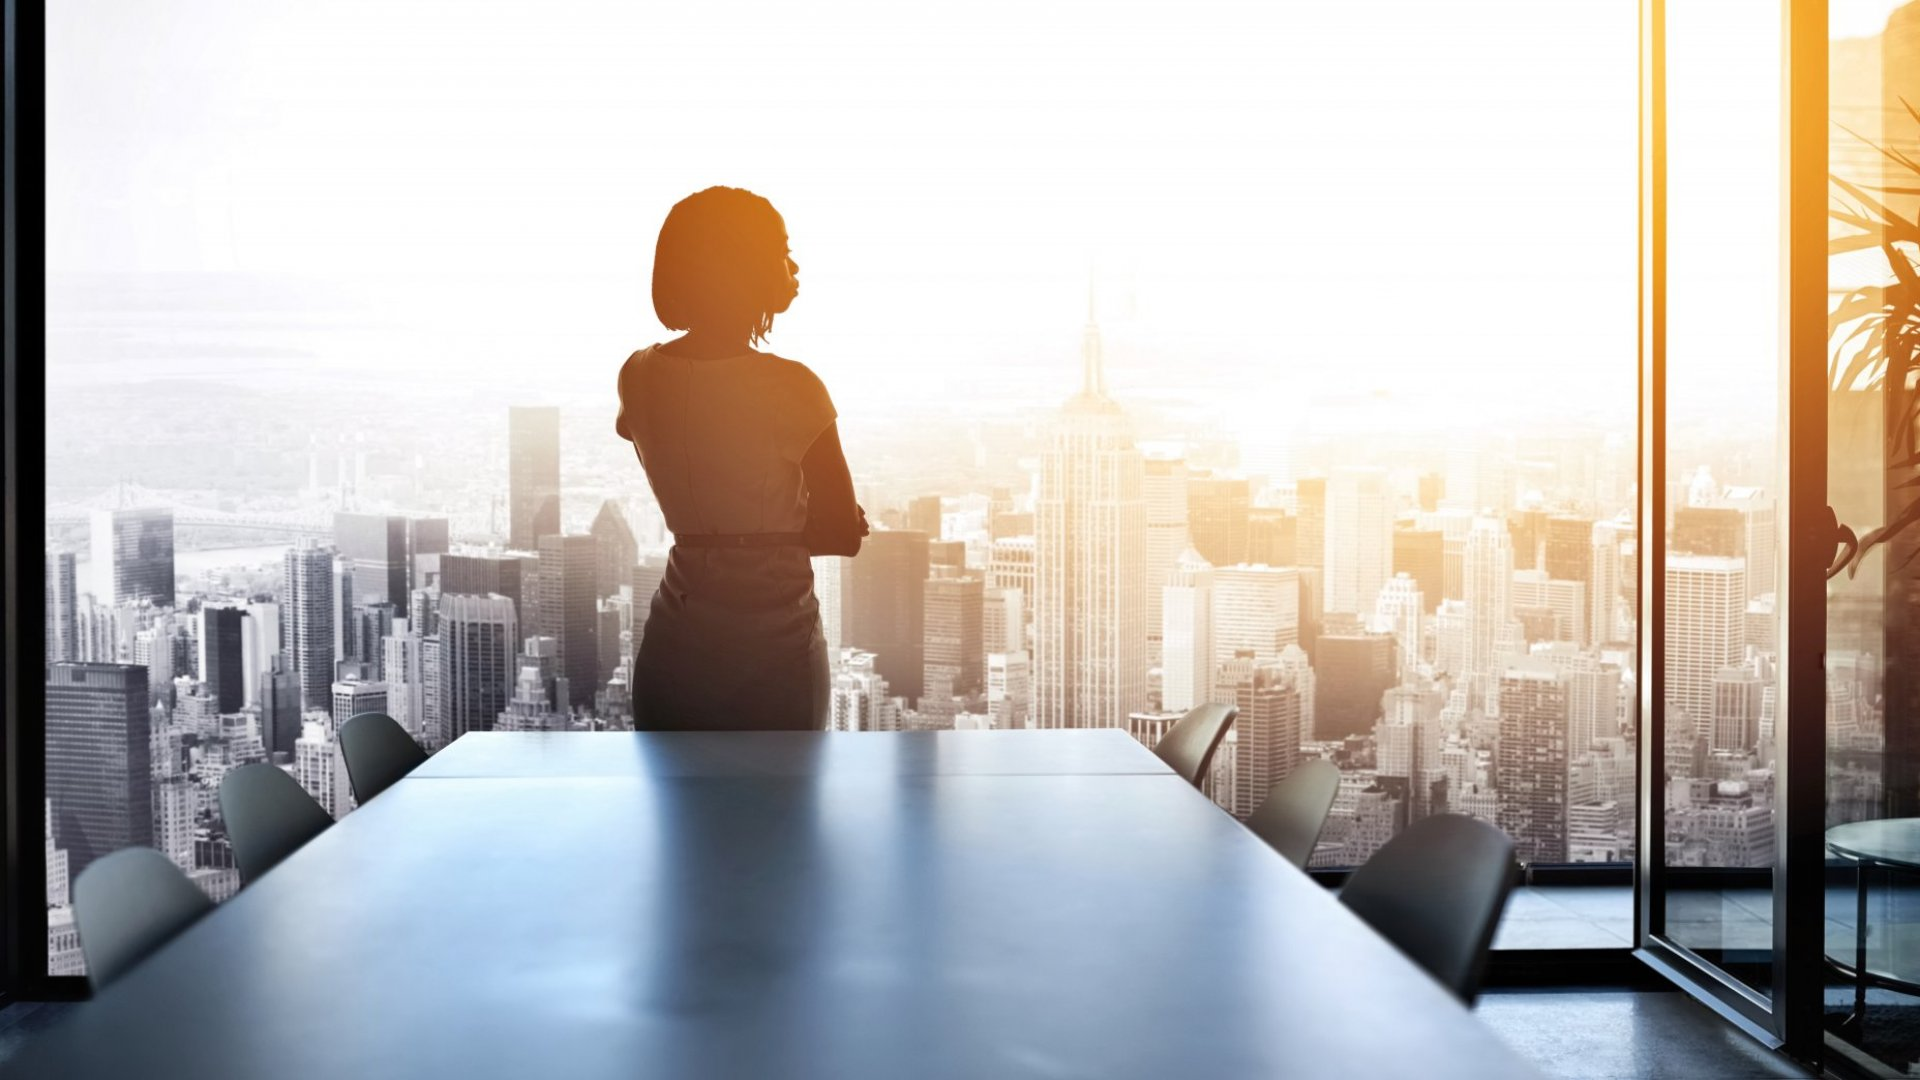 As a New CEO, How Can I Avoid Criticizing My Predecessor?